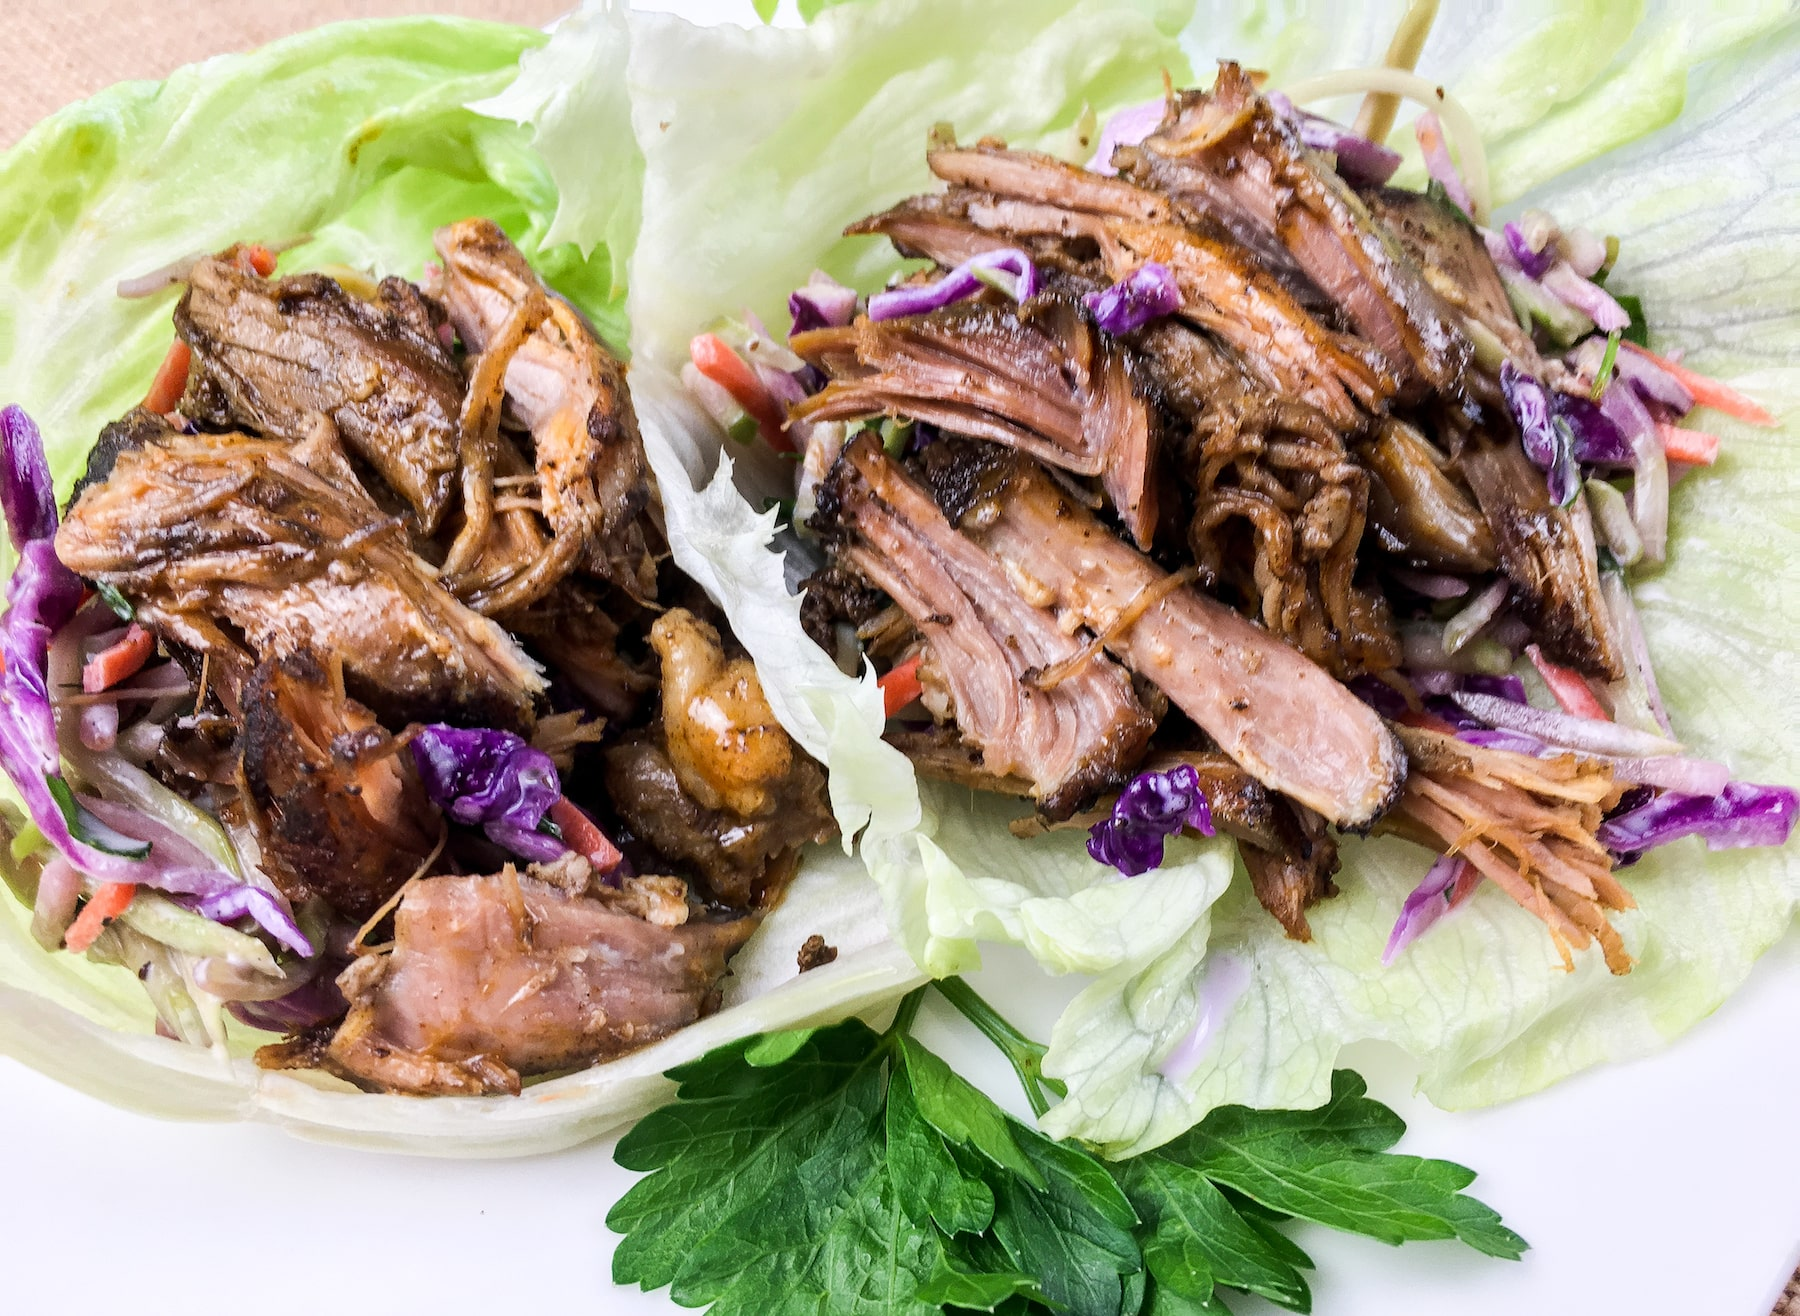 To serve, fill each lettuce leaf with some easy crunchy broccoli slaw and top with some pulled pork